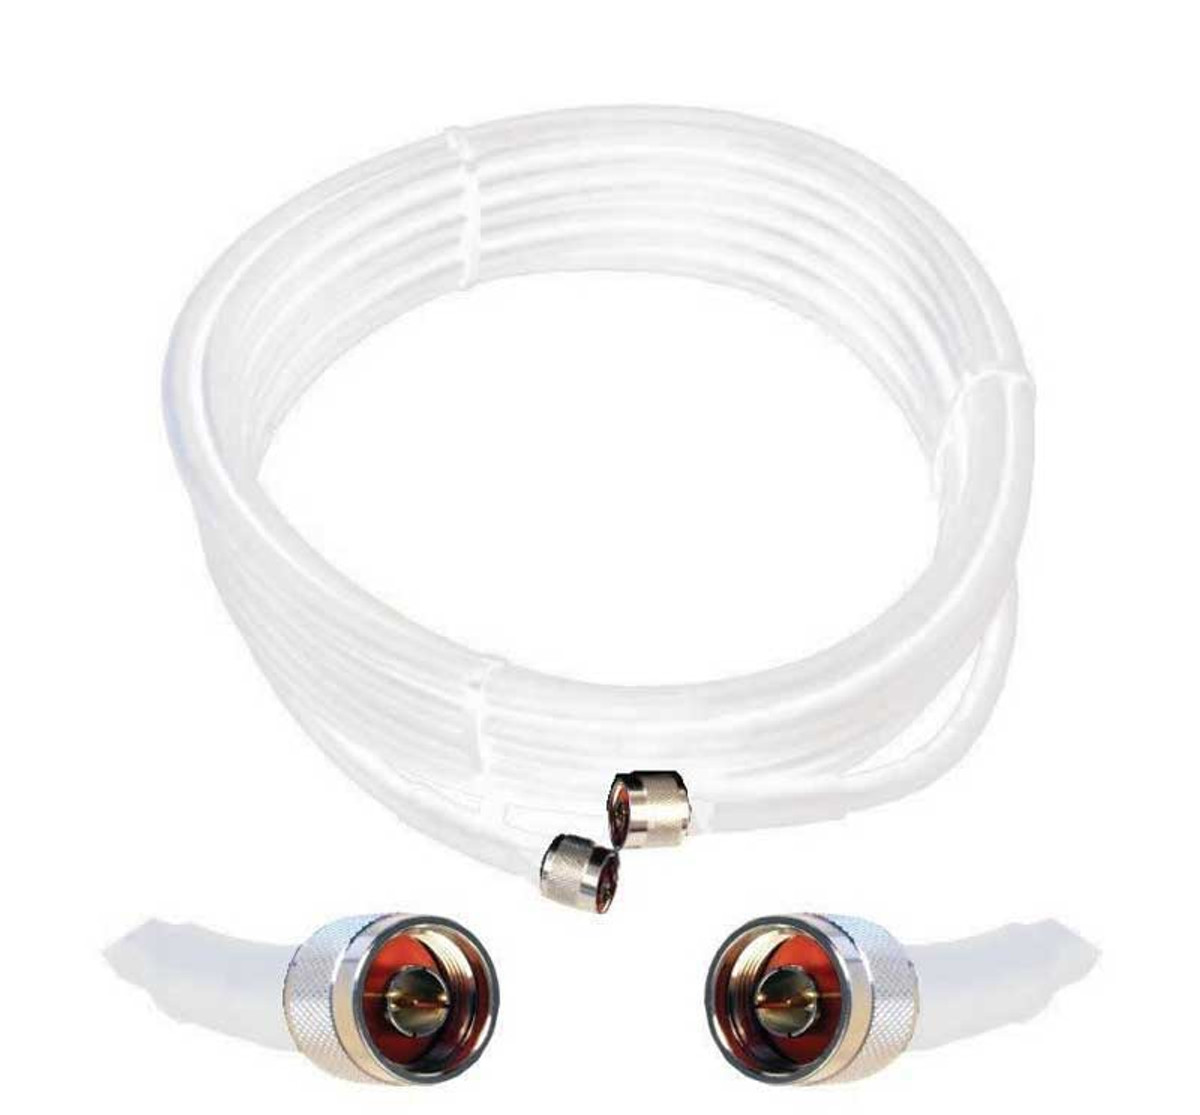 Wilson 952430 30-Foot WILSON400 Ultra Low-Loss Coaxial Cable Male-Male White, detail